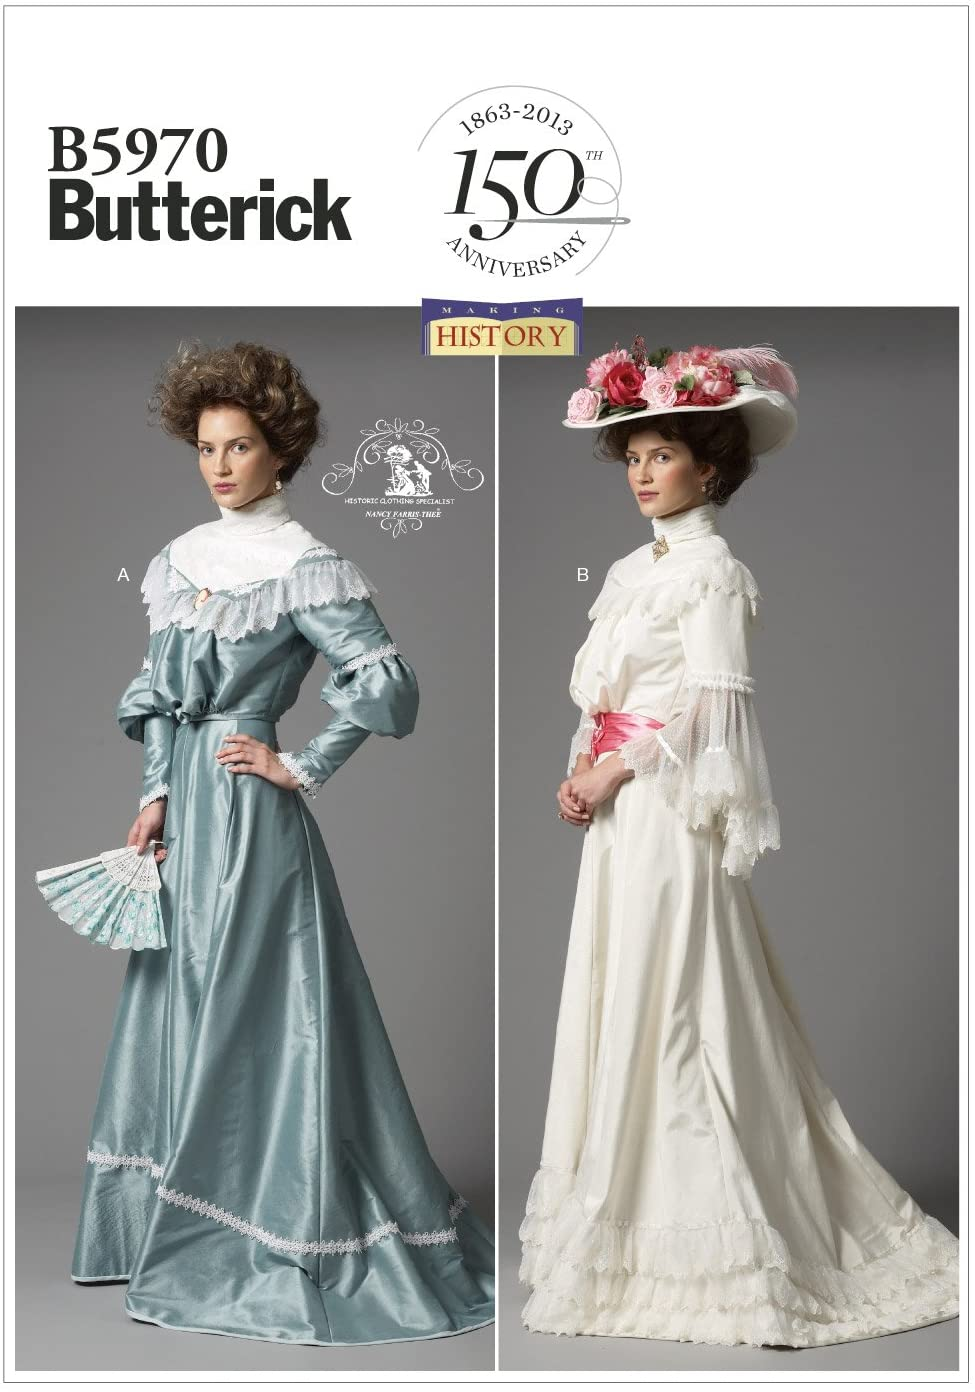 Butterick Patterns B5970 Misses' Top and Skirt Sewing Templates, Size F5 (16-18-20-22-24)